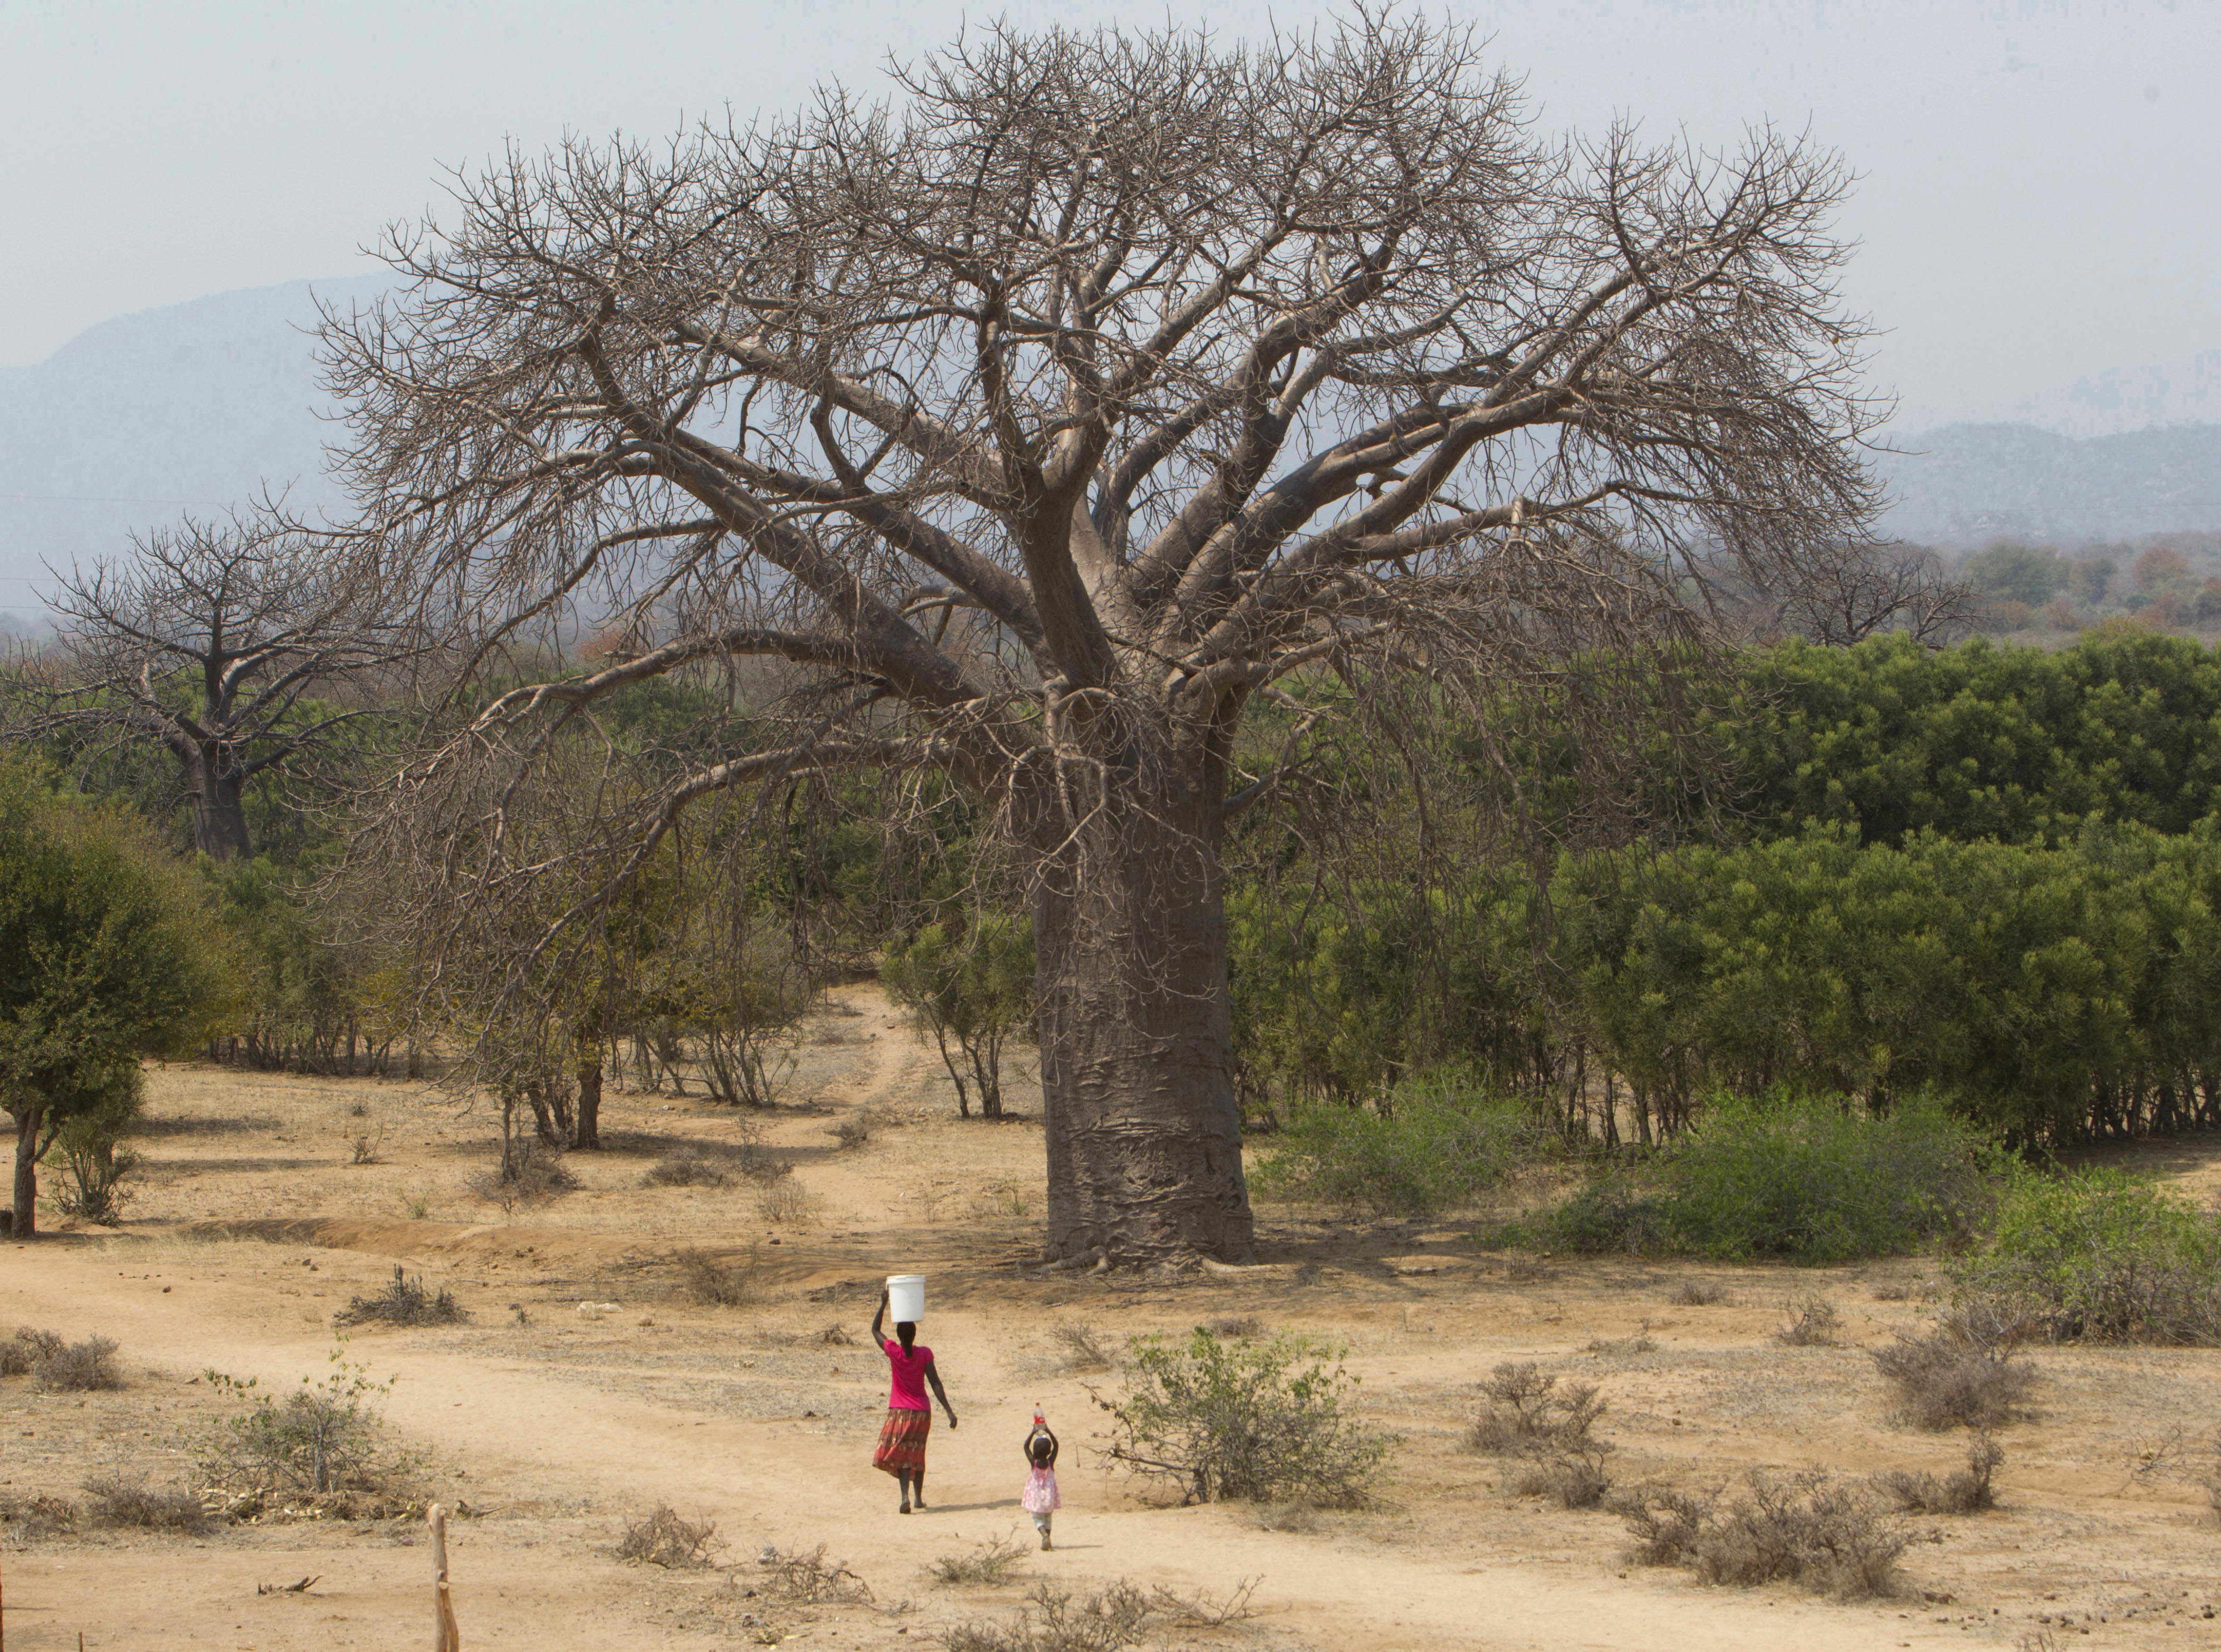 A woman and child walk past a giant baobab tree in Chimanimani